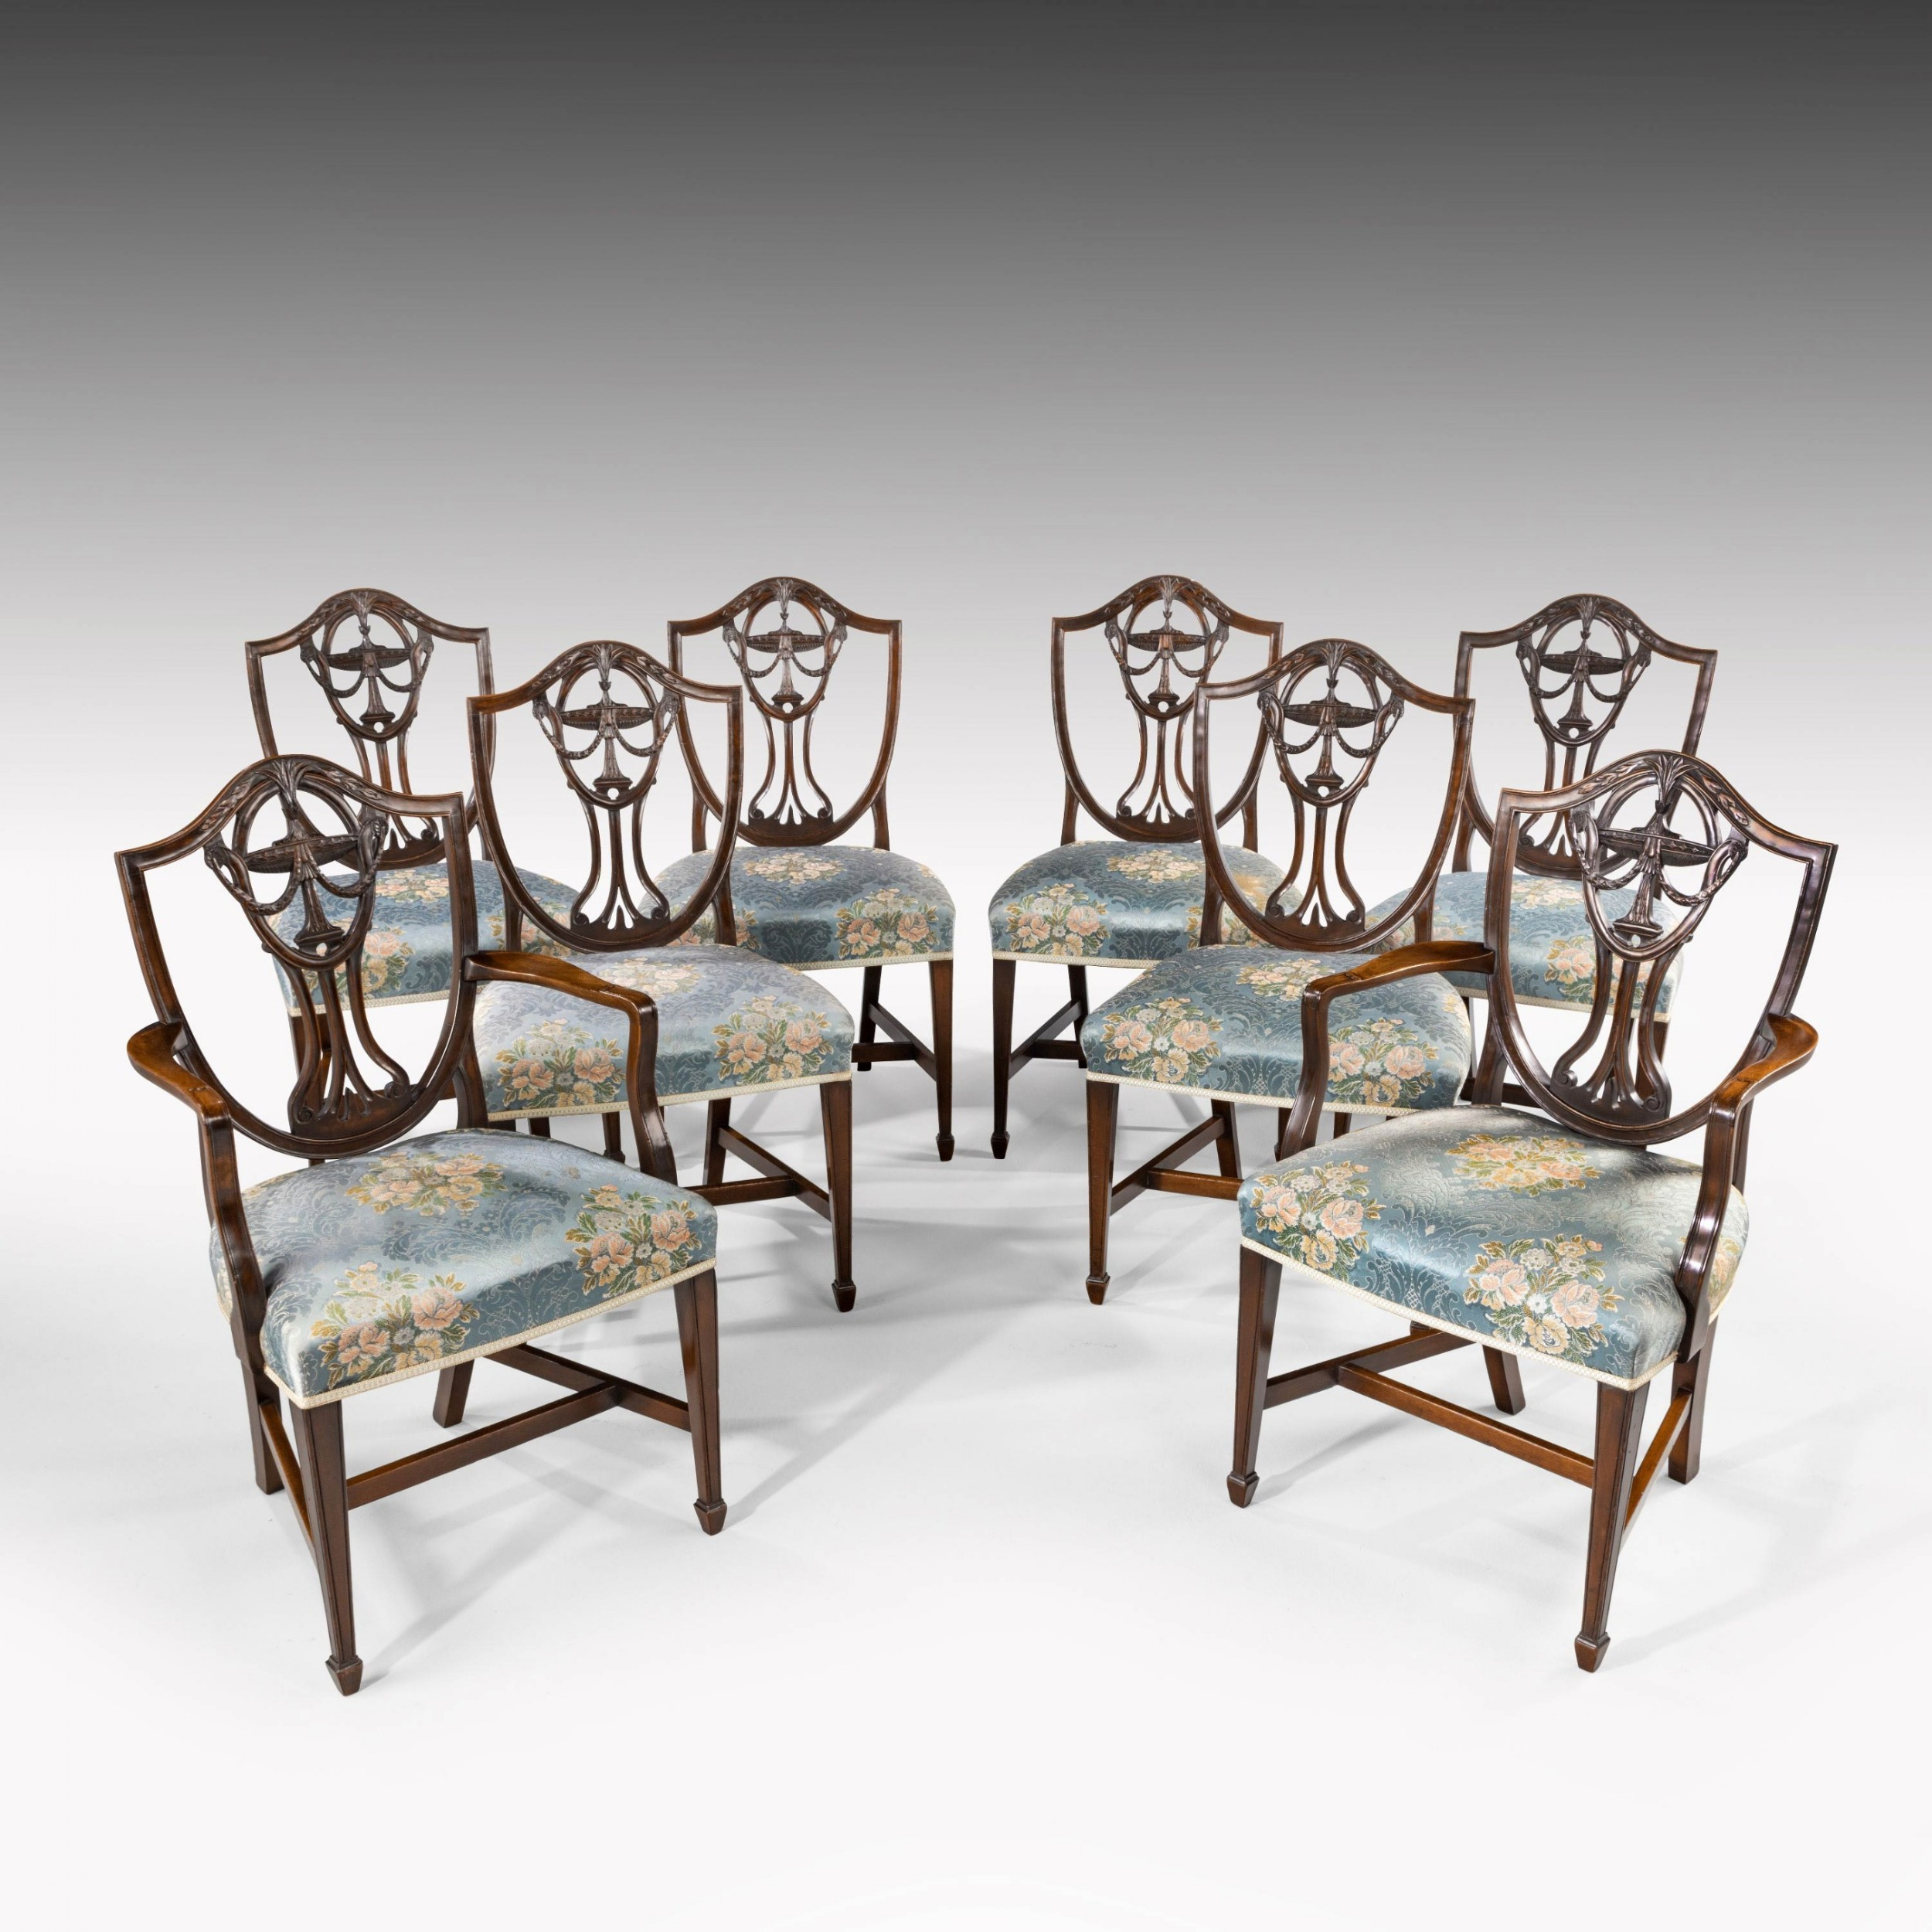 an elegant set of 8 62 early 20th century classical hepplewhite chairs